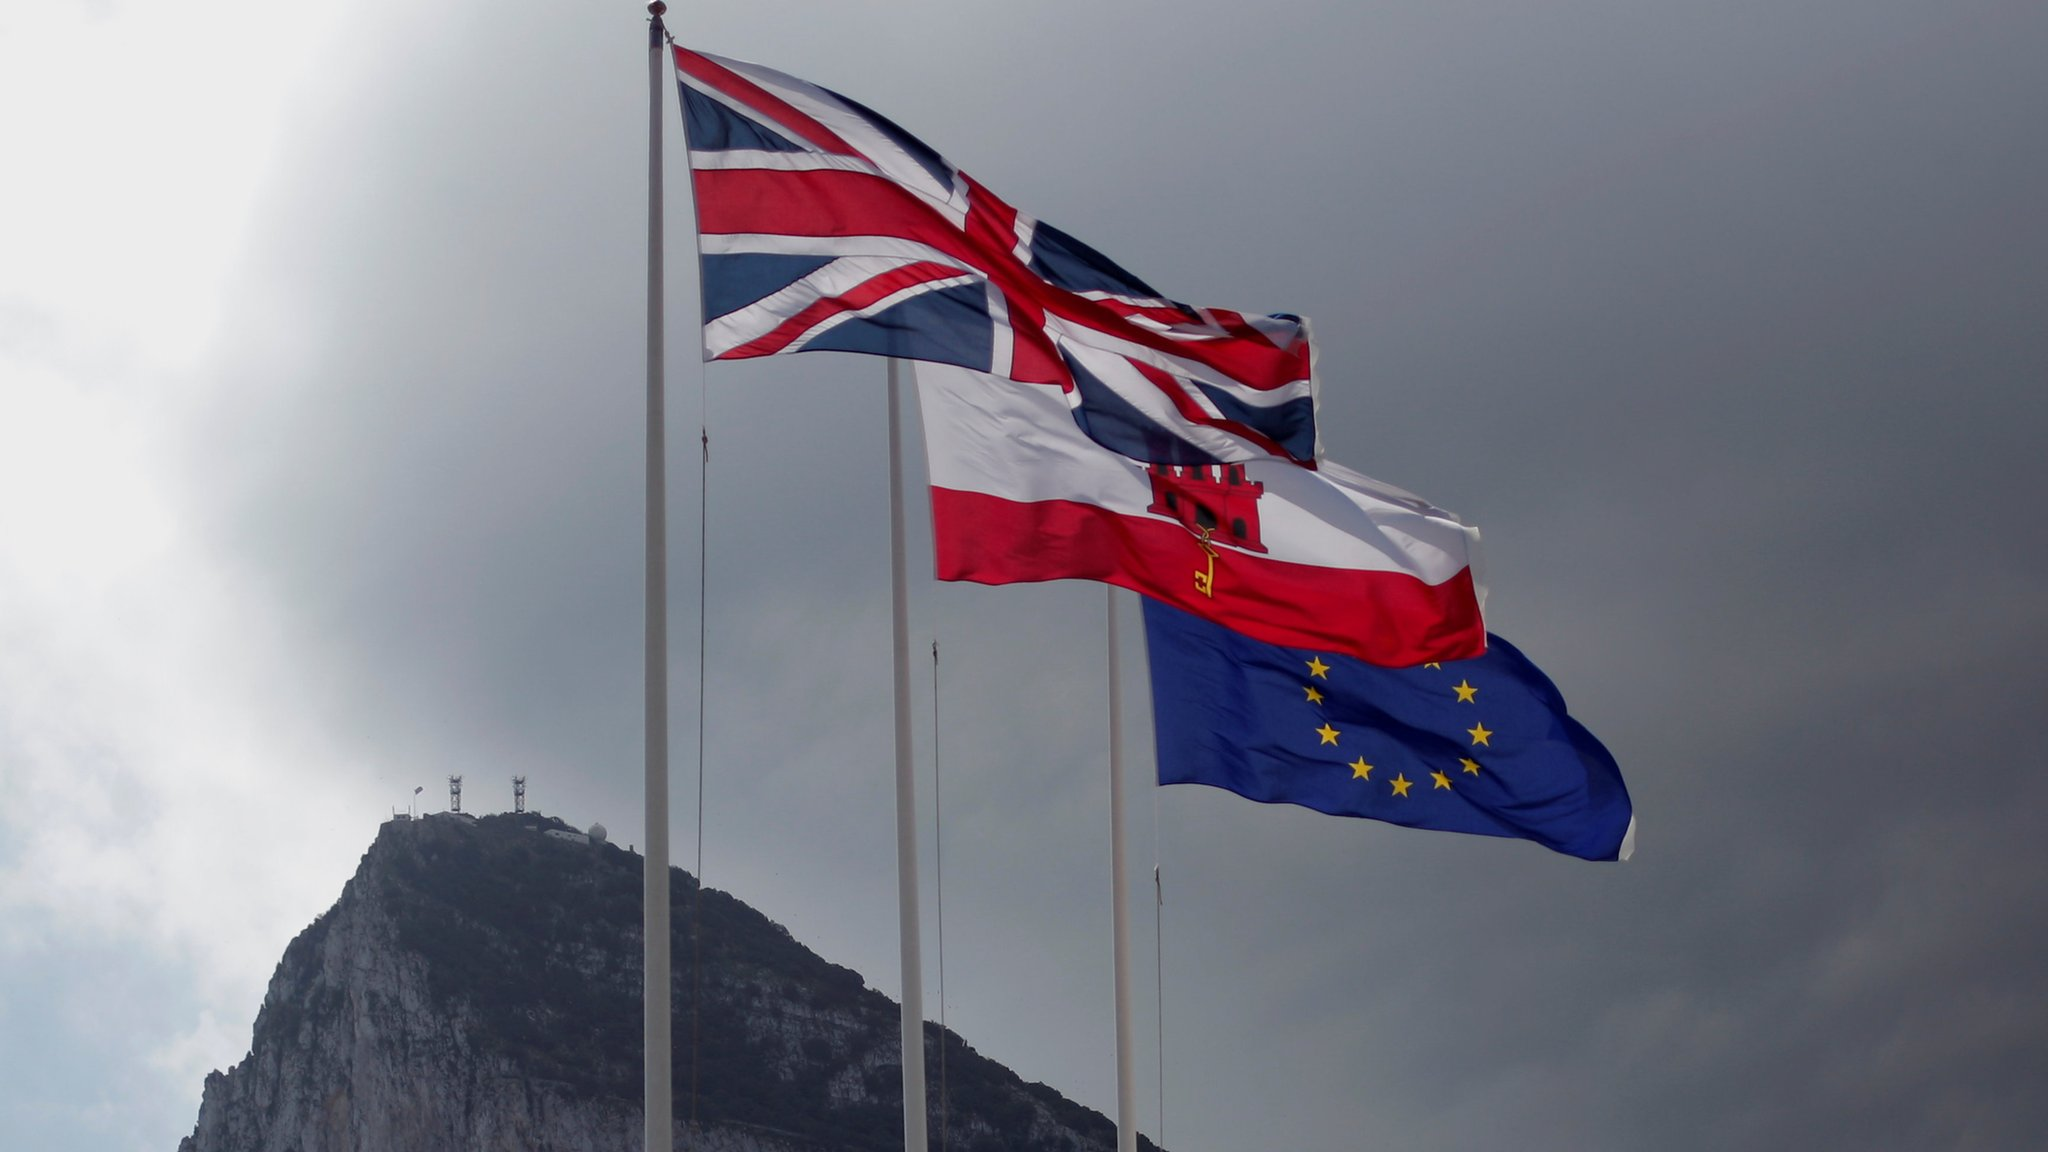 Spain Brexit: PM Sánchez threatens to vote no over Gibraltar